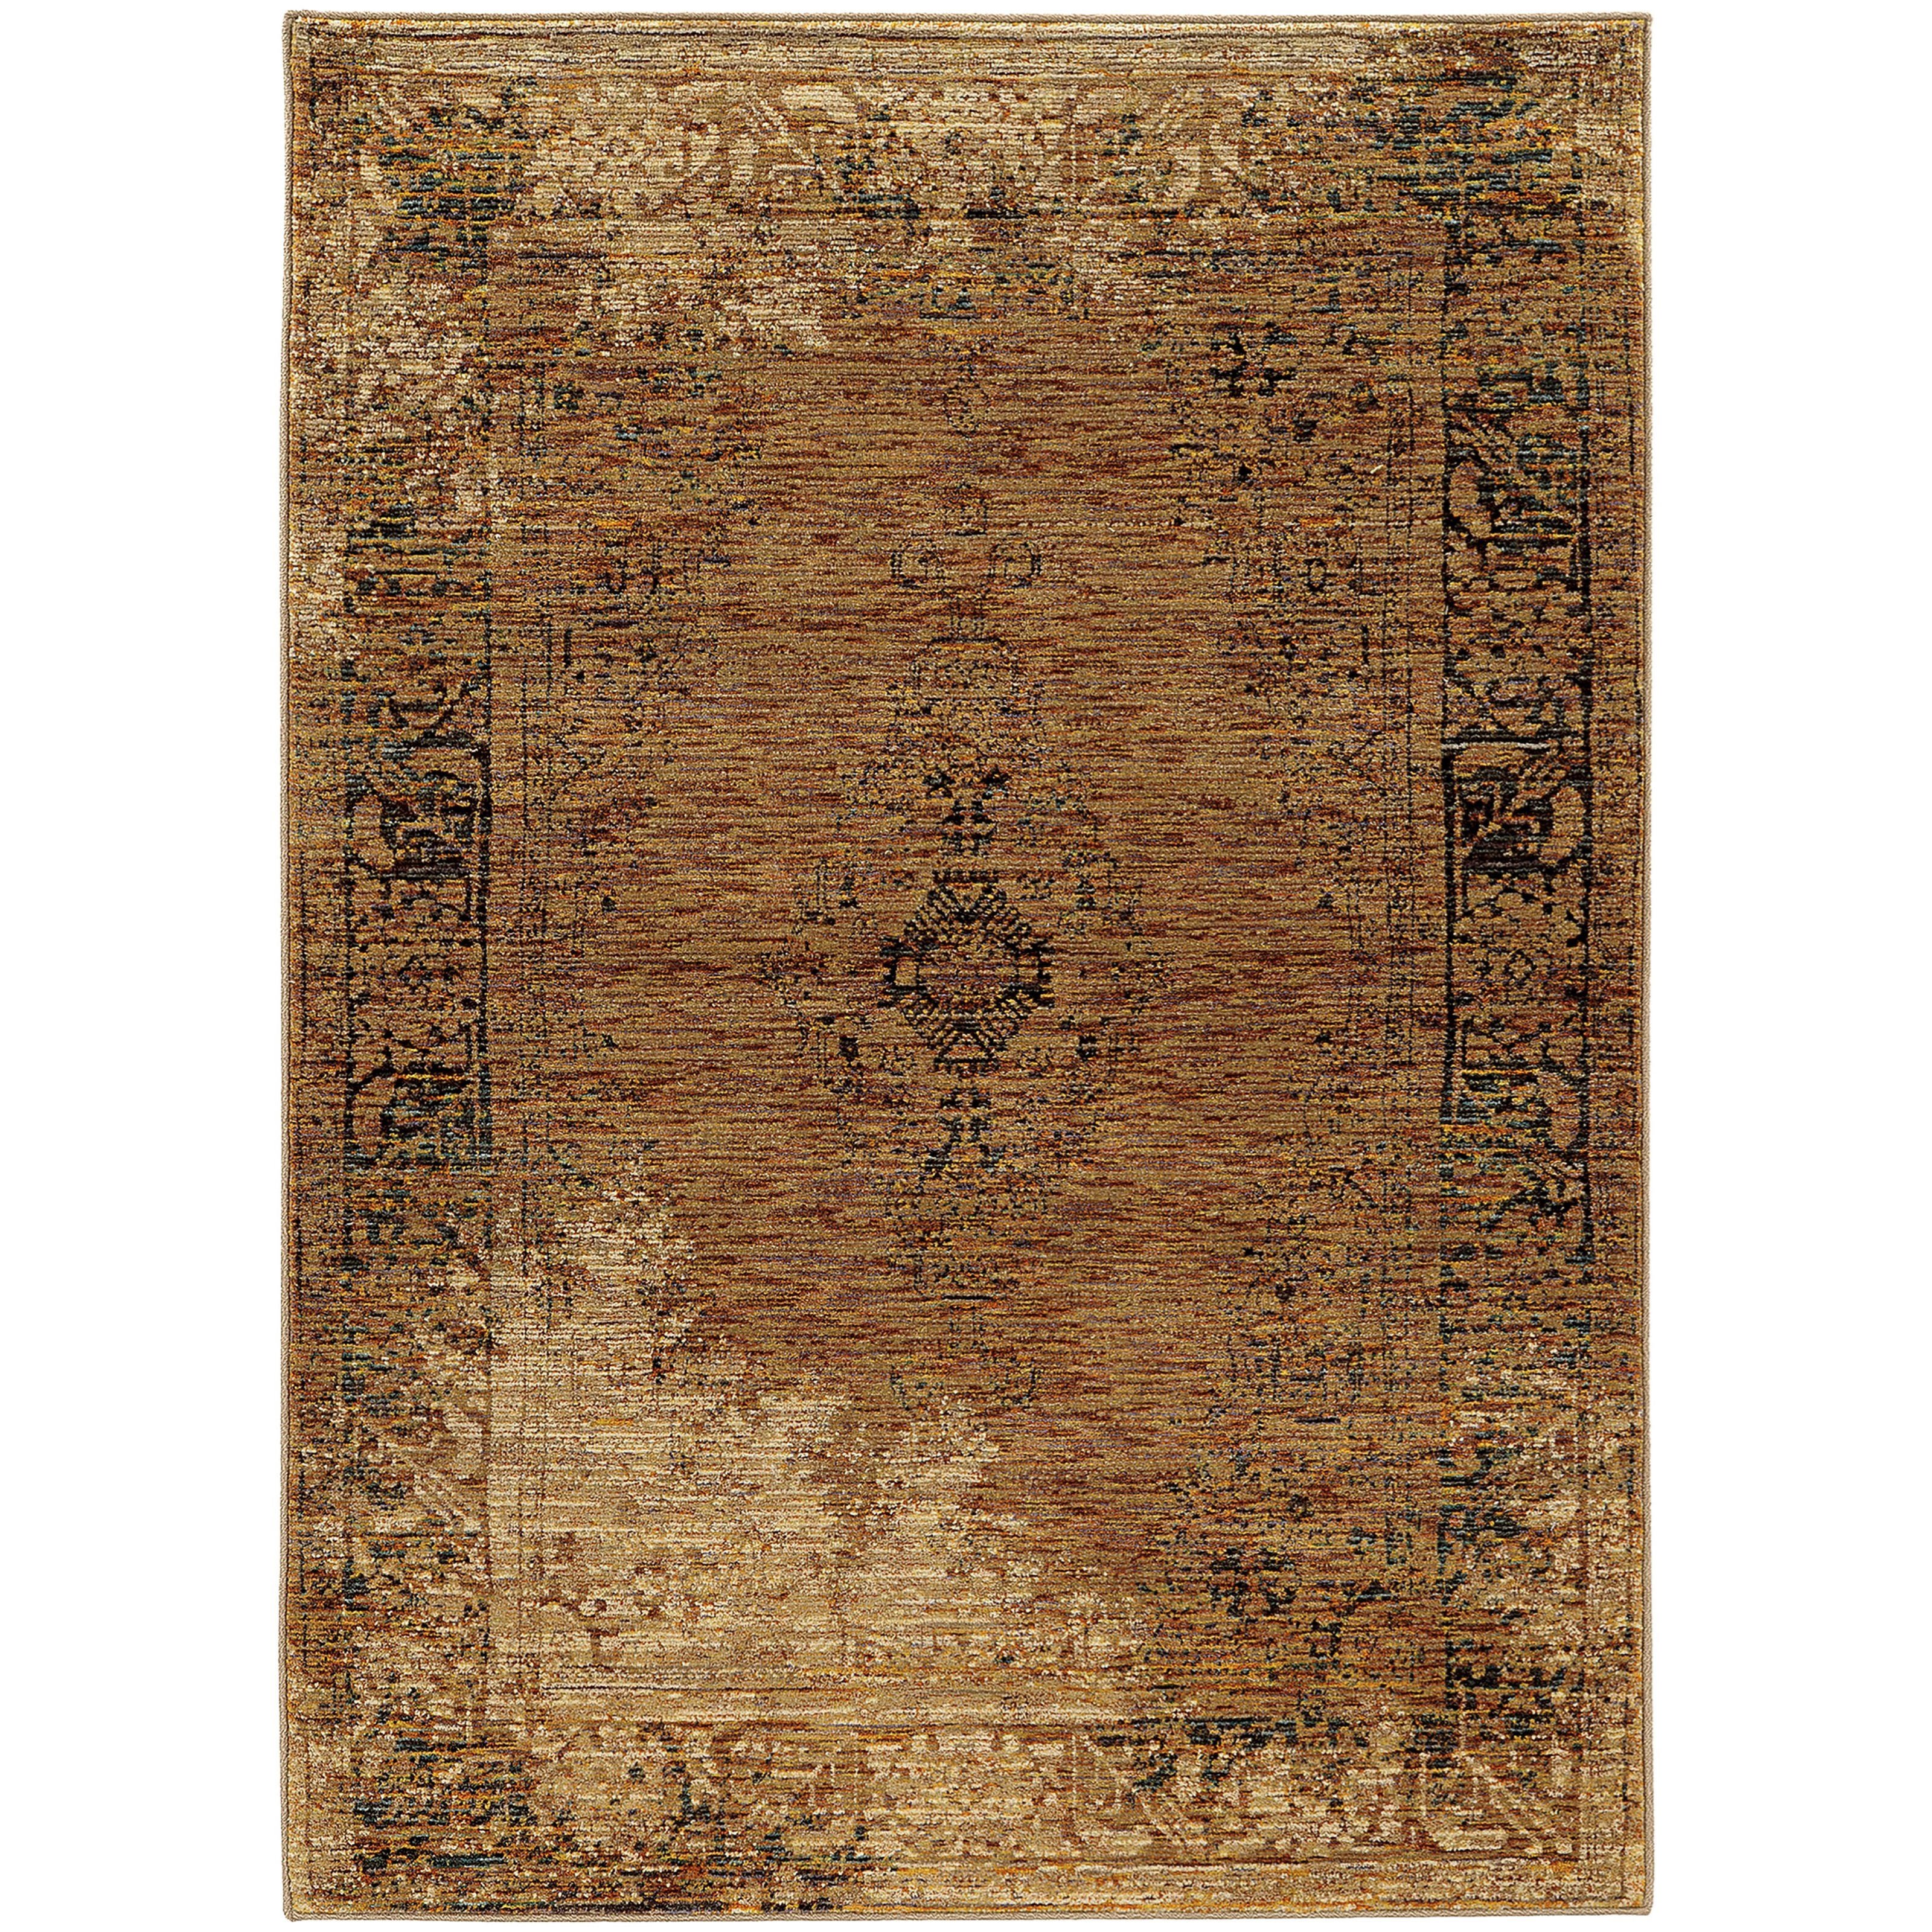 "Andorra 8' 6"" X 11' 7"" Casual Gold/ Brown Rectangle  by Oriental Weavers at Steger's Furniture"